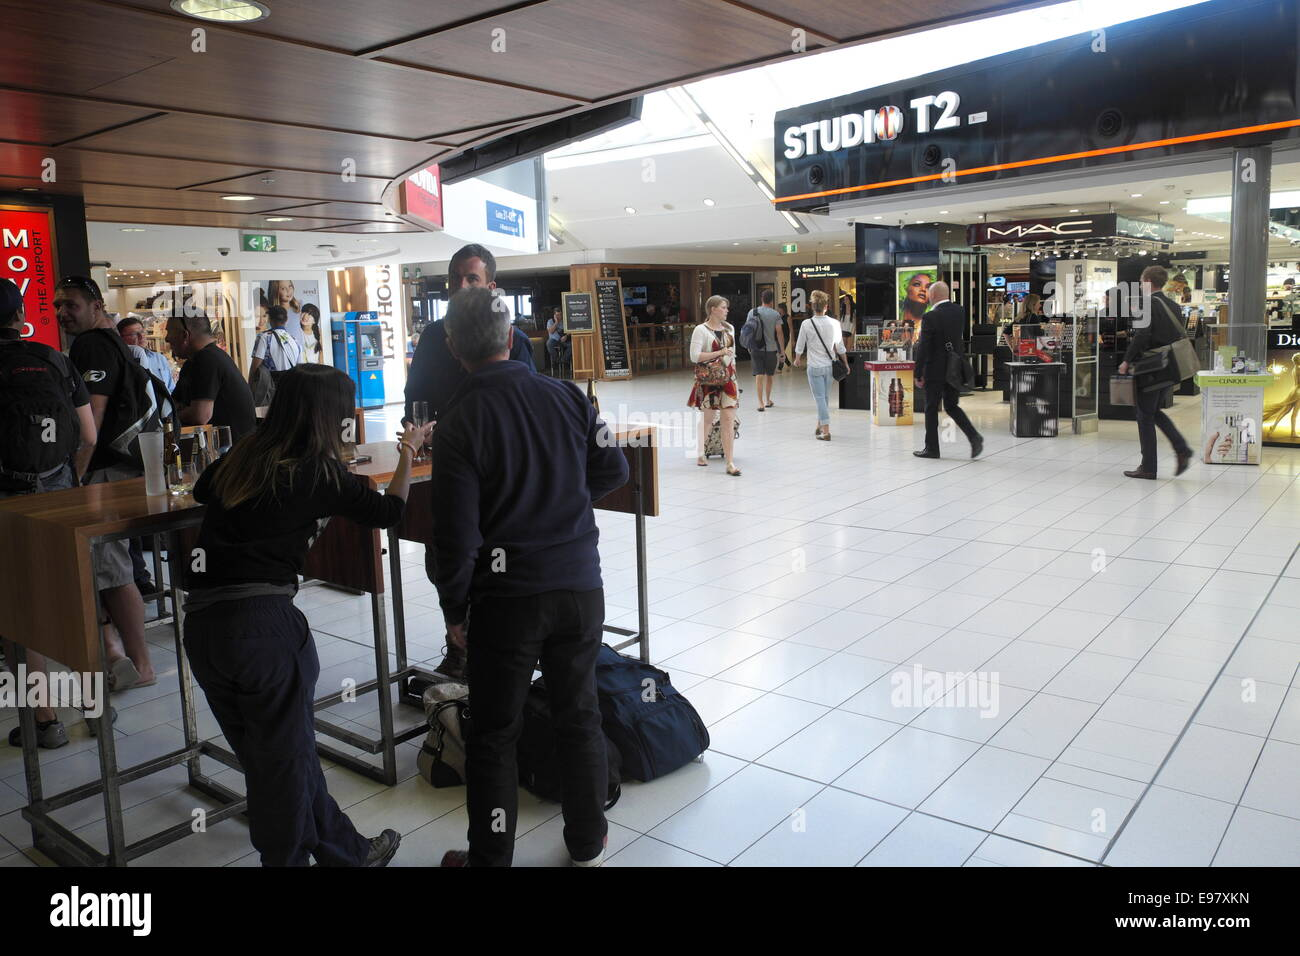 Sydney Airport Shops Sydney Airport Departure Lounge Terminal 2 Concourse Area With